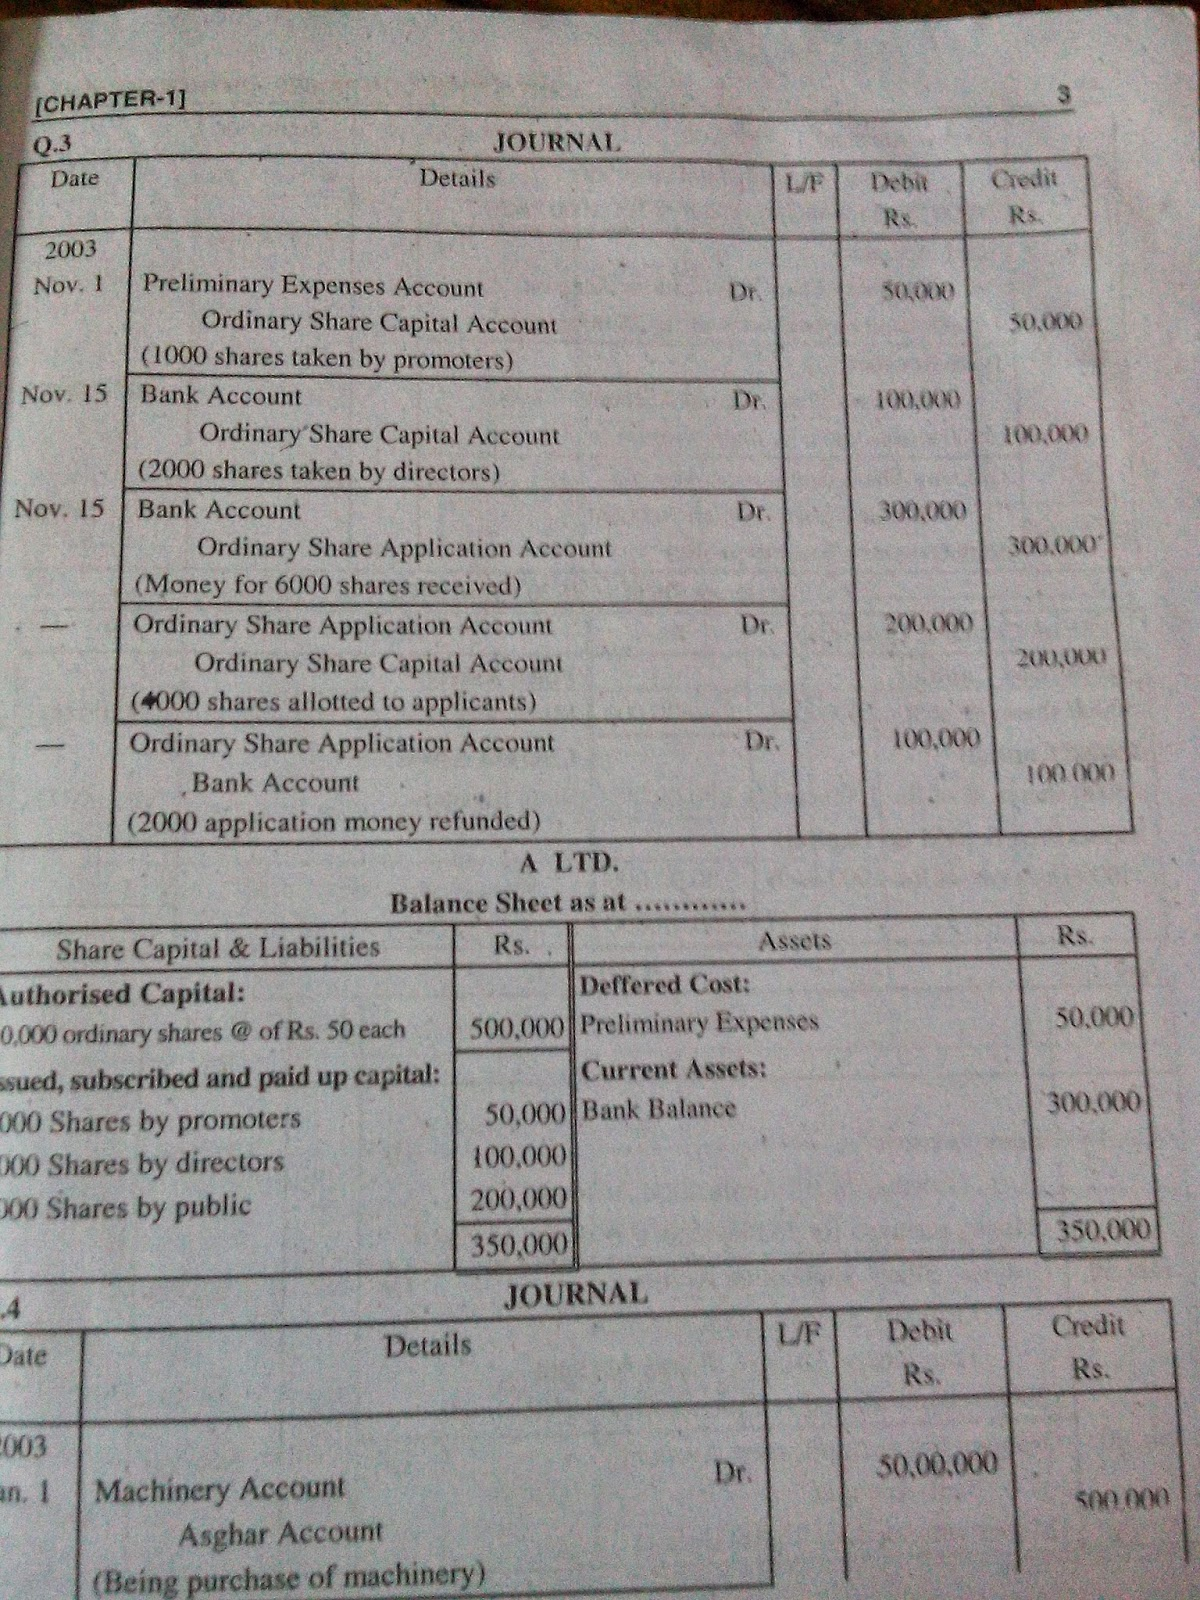 B.Com Part-II Advanced Accounting Solution : Chapter No 1